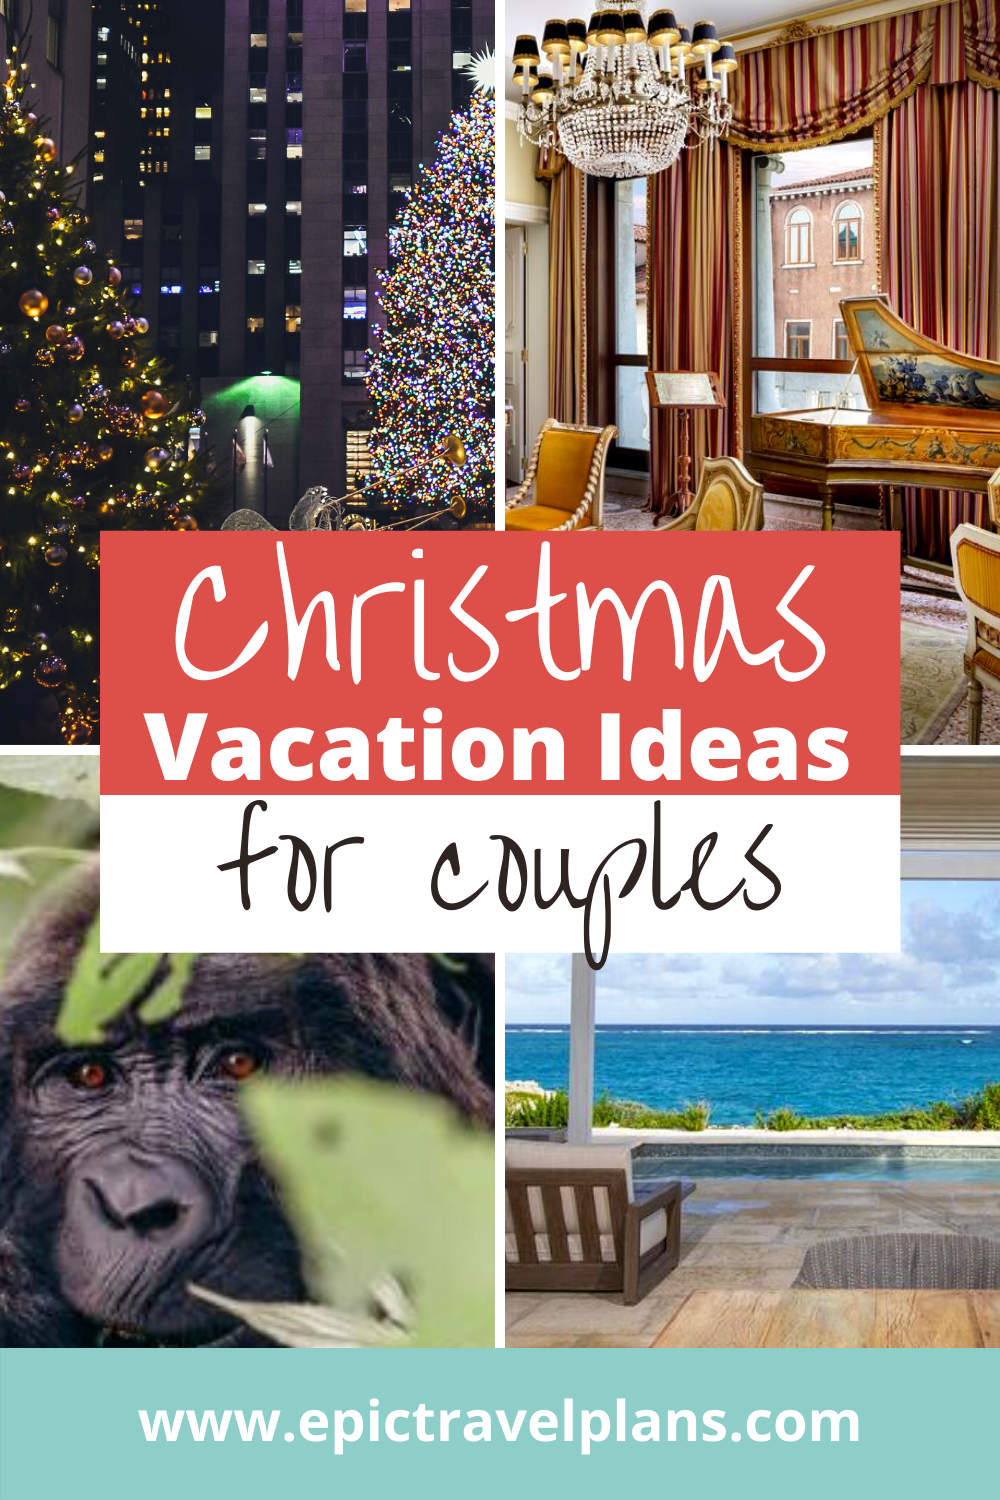 Best Christmas vacation ideas for couples, getaway trips for Christmas